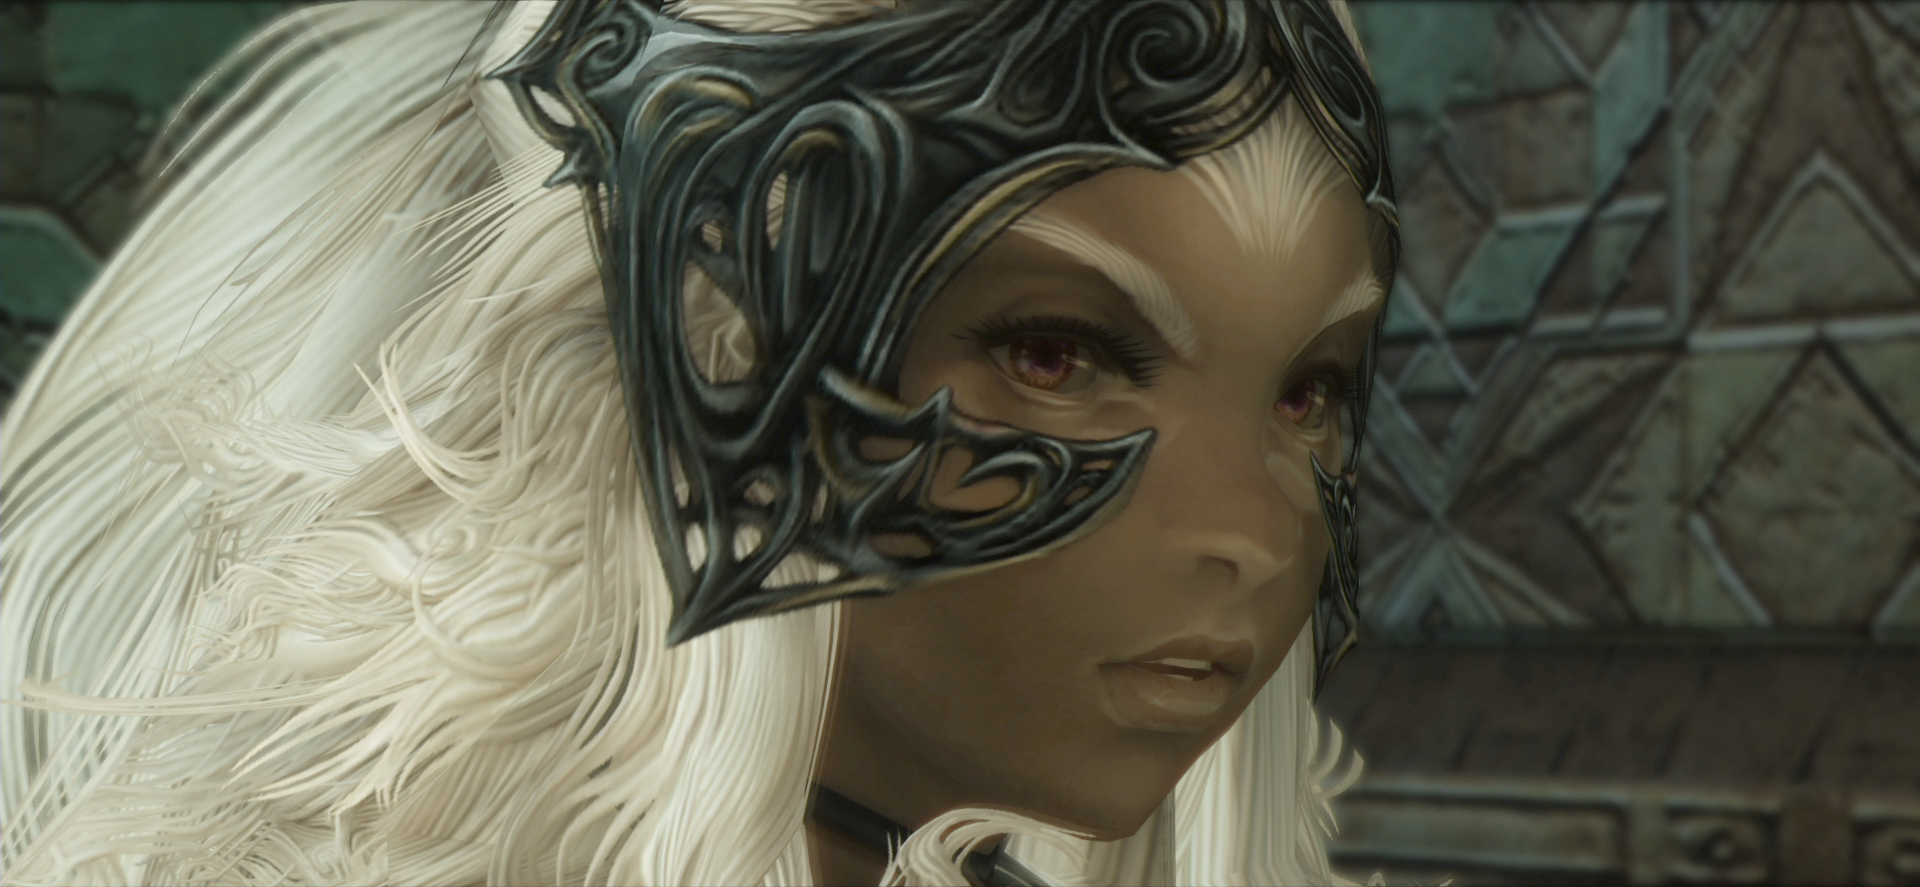 Fran, a playable character in Final Fantasy XII.